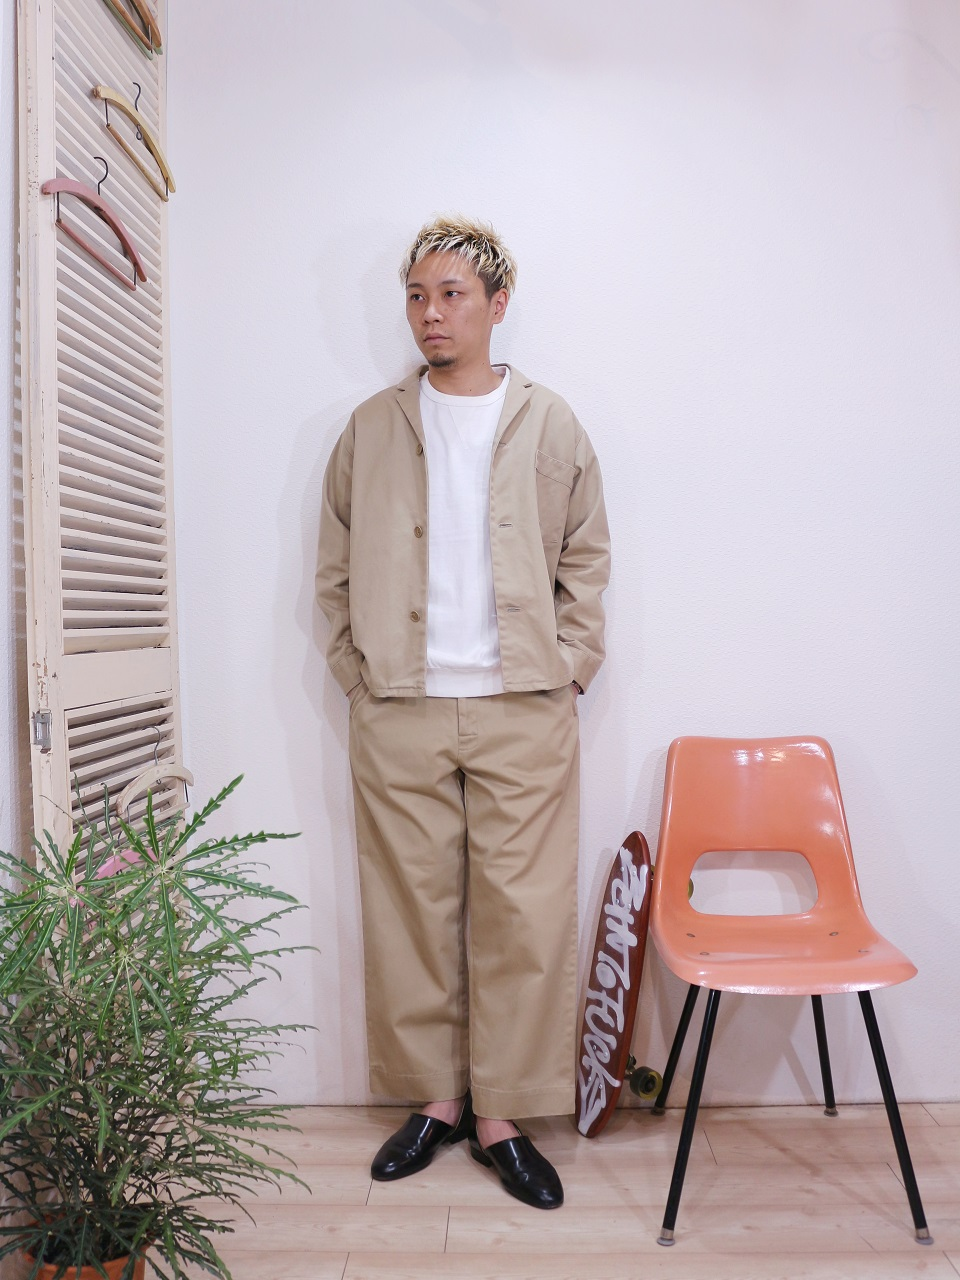 outer/SUNNY SPORTS-PAJAMA JACKET(SIZE M)tee/FRUIT OF THE LOOM-SWEAT STYLE L/S TEE(SIZE M)pants/SUNNY SPORTS-PAJAMA PANTS(SIZE M)を使ったコーディネート